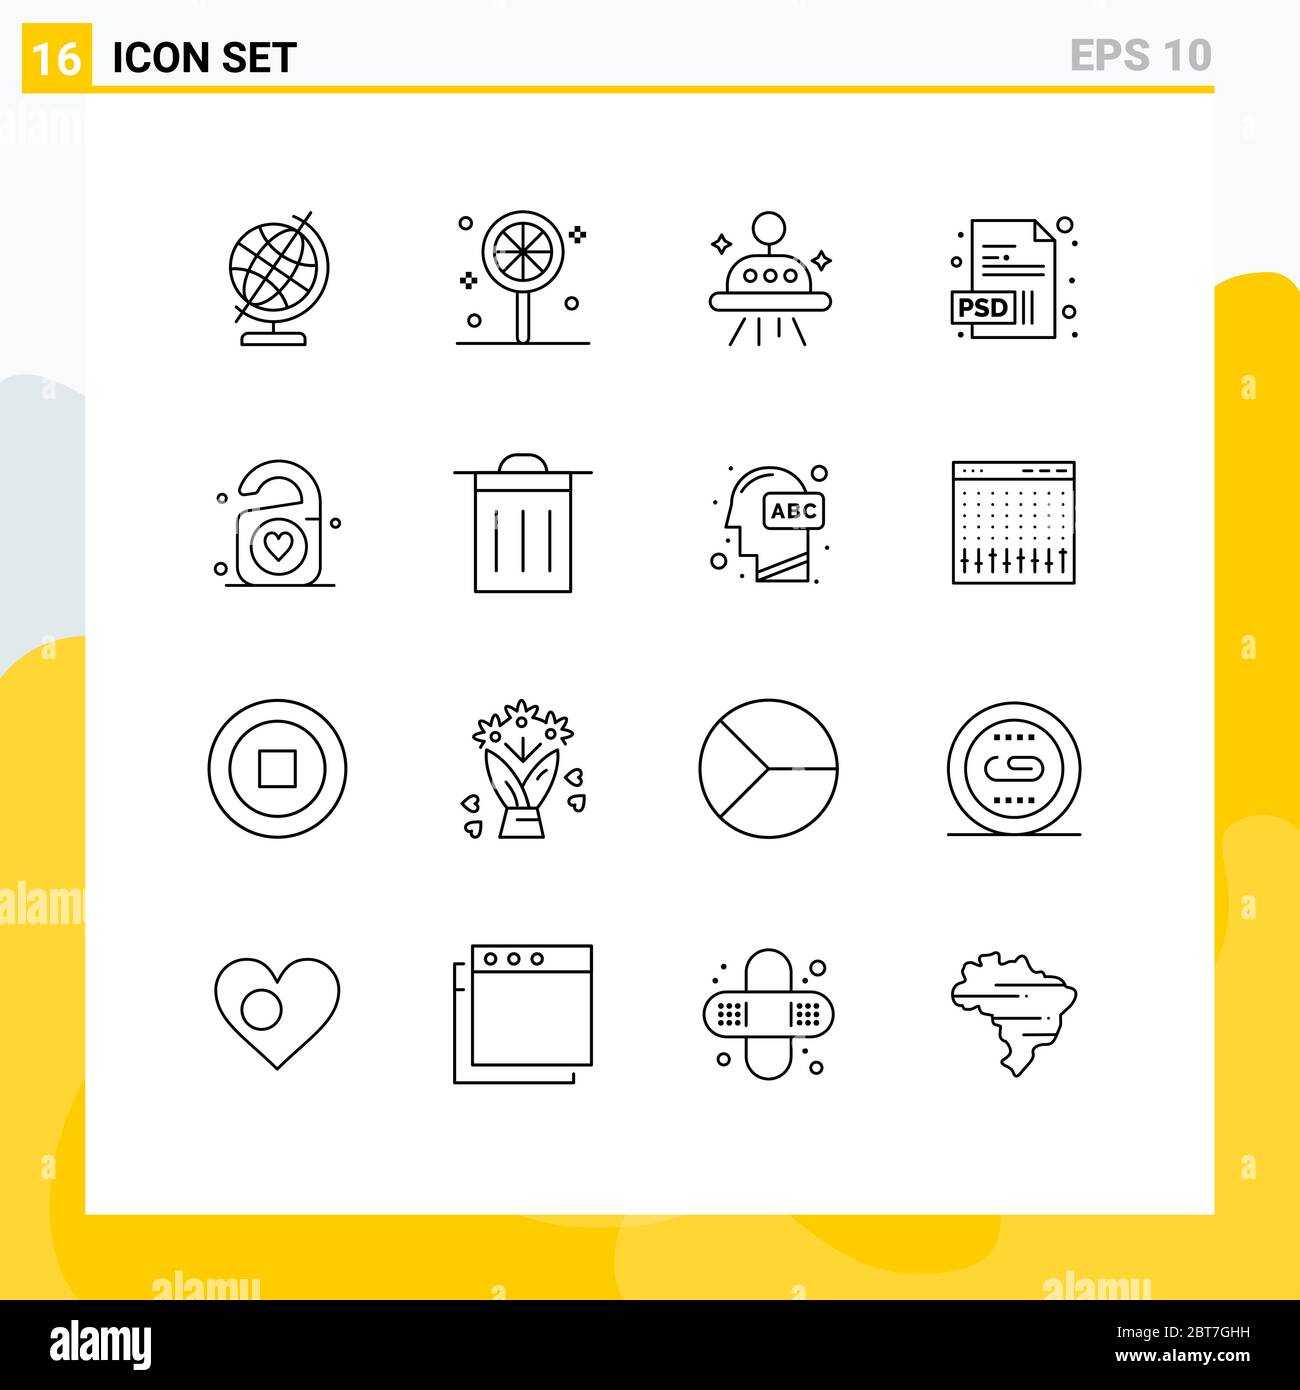 User Interface Pack of 16 Basic Outlines of trash, wedding, ufo, heart, tag Editable Vector Design Elements Stock Vector